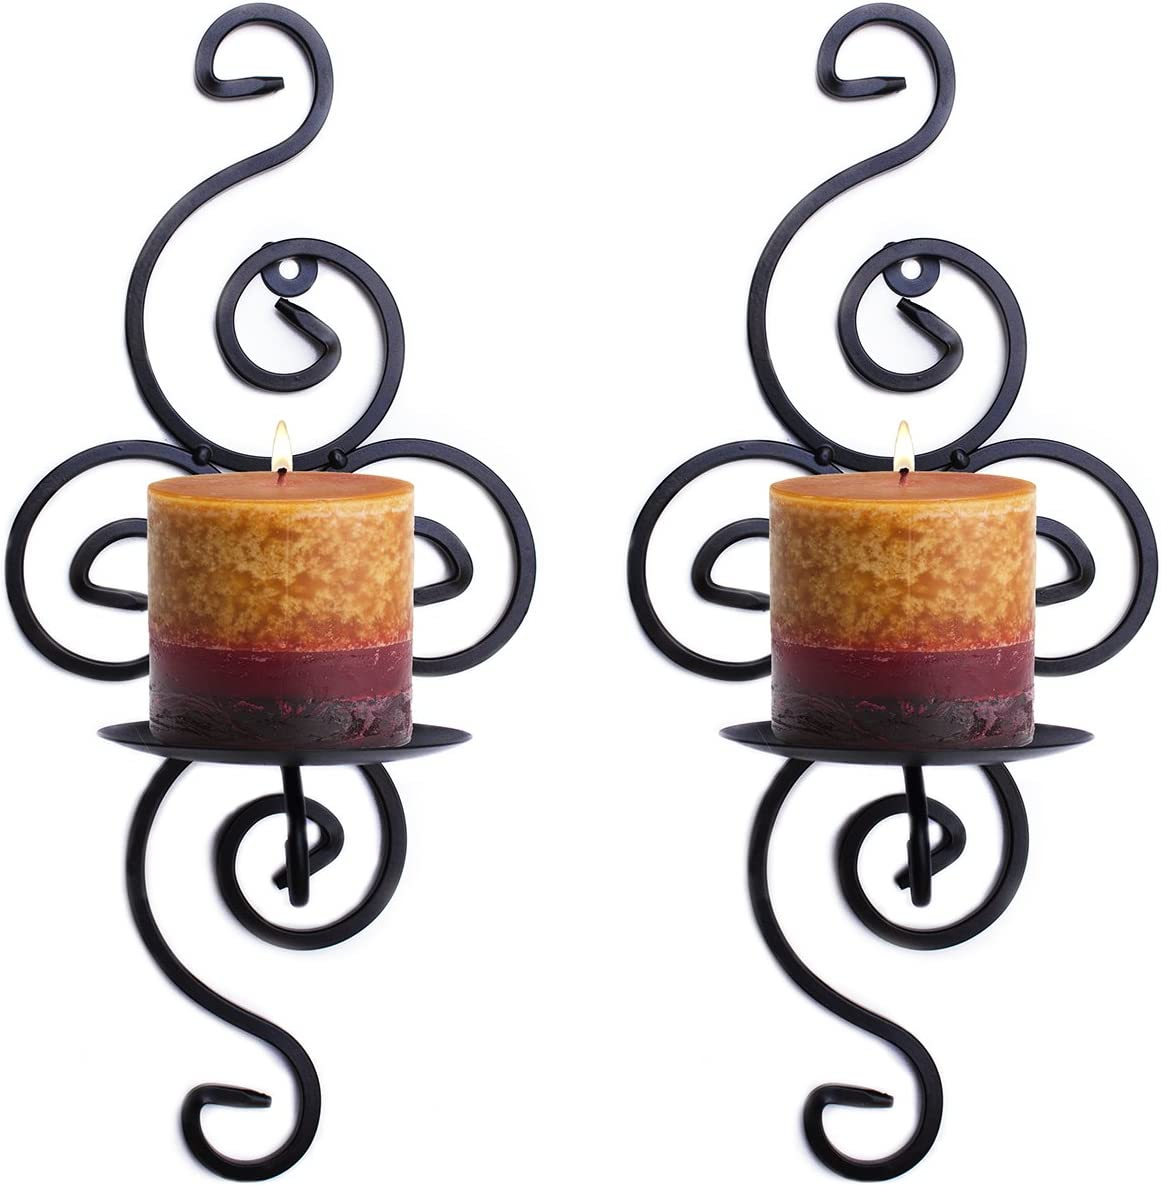 Super Z Outlet Pair of Elegant Swirling Iron Hanging Wall Candleholders Votives Sconce for Home Wall Decorations, Weddings, Events: Home & Kitchen